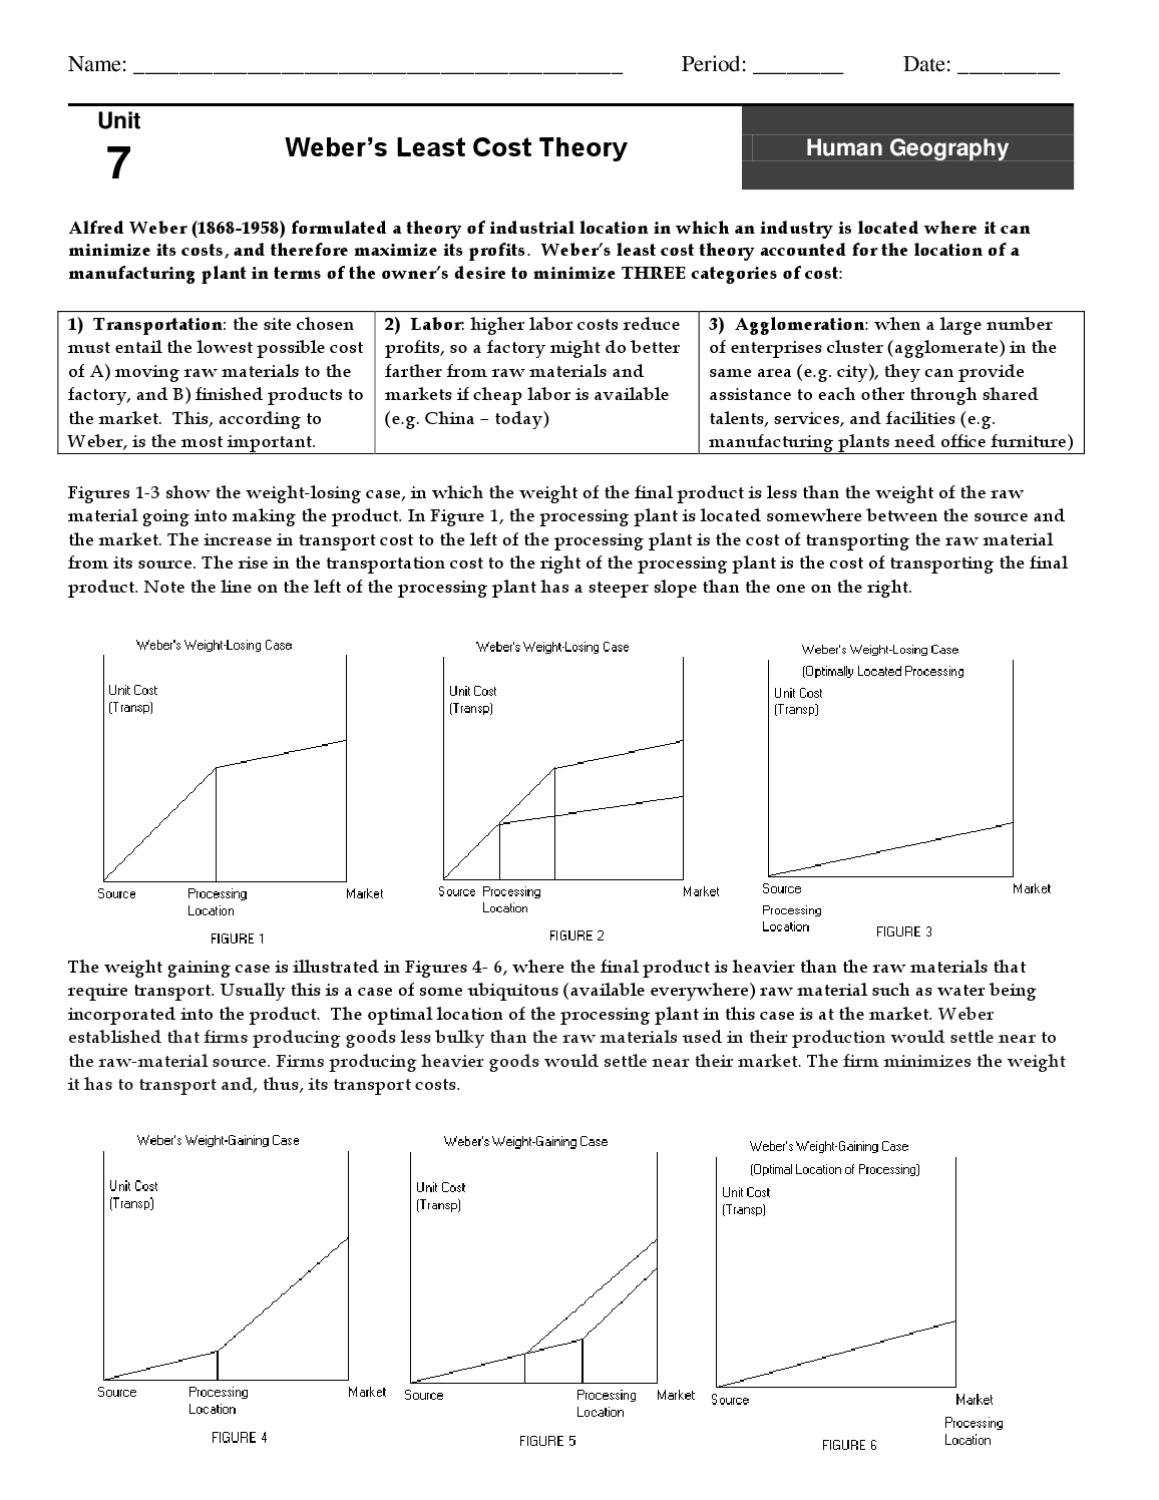 Weber's Least Cost Theory by Jahnoi Anderson - issuu